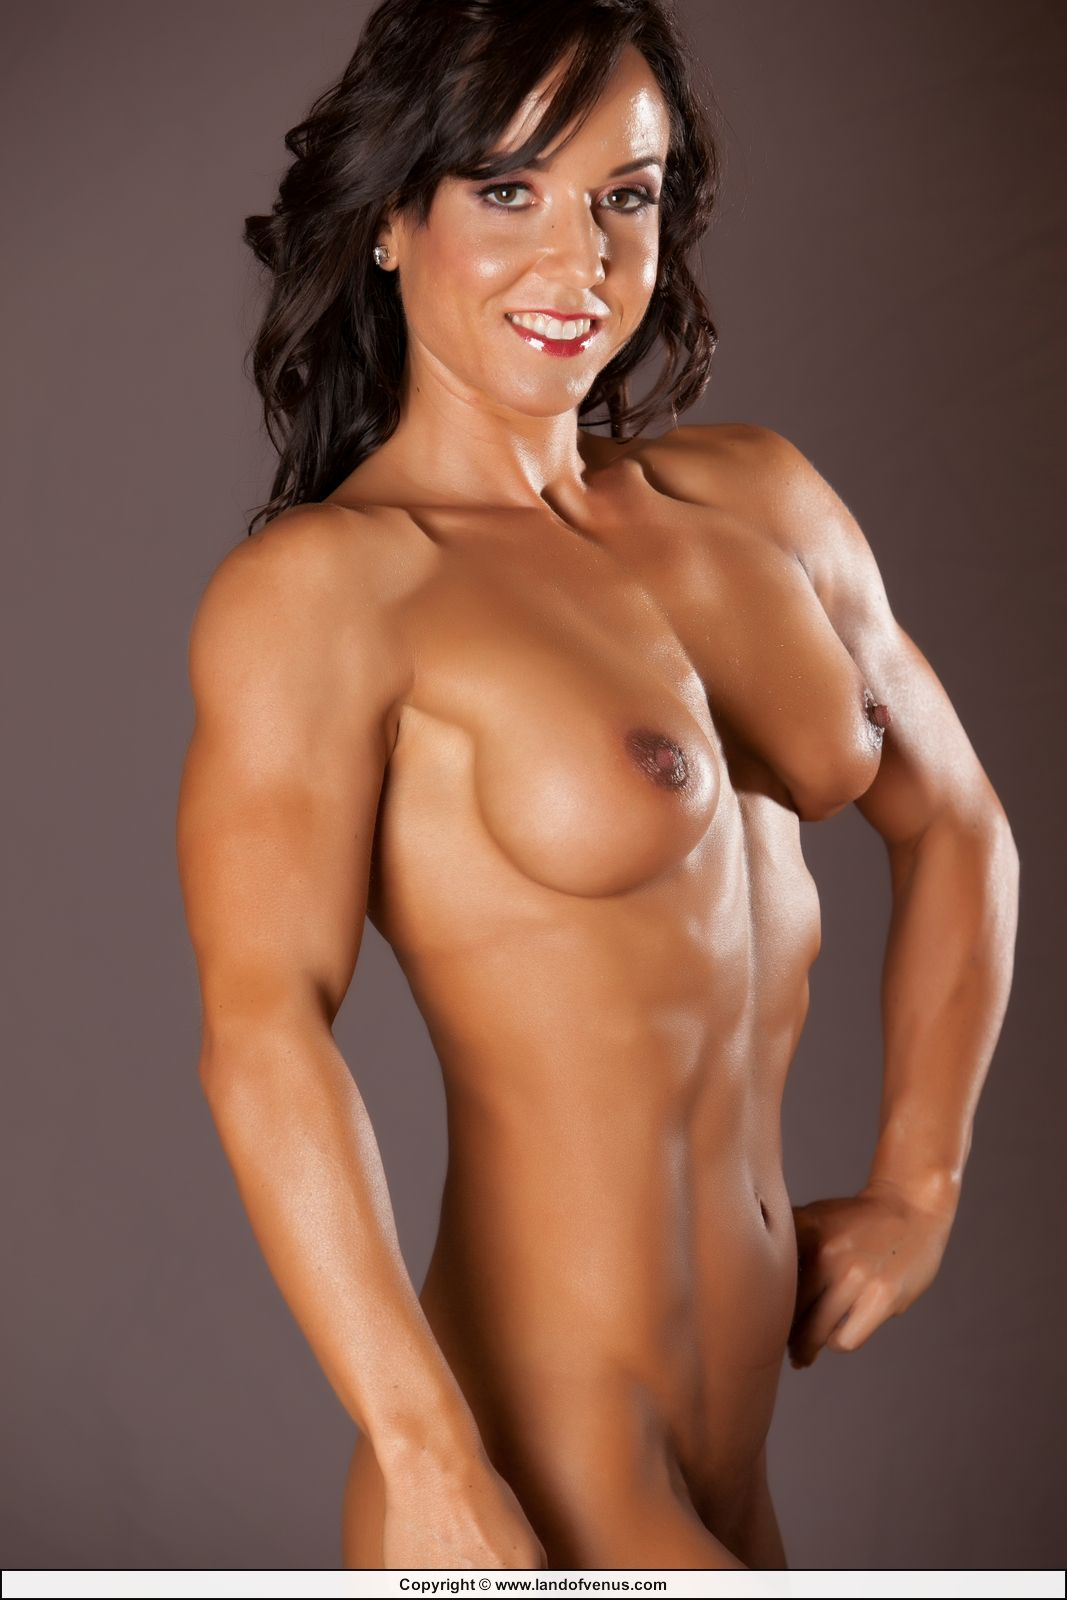 Naked women fitness models